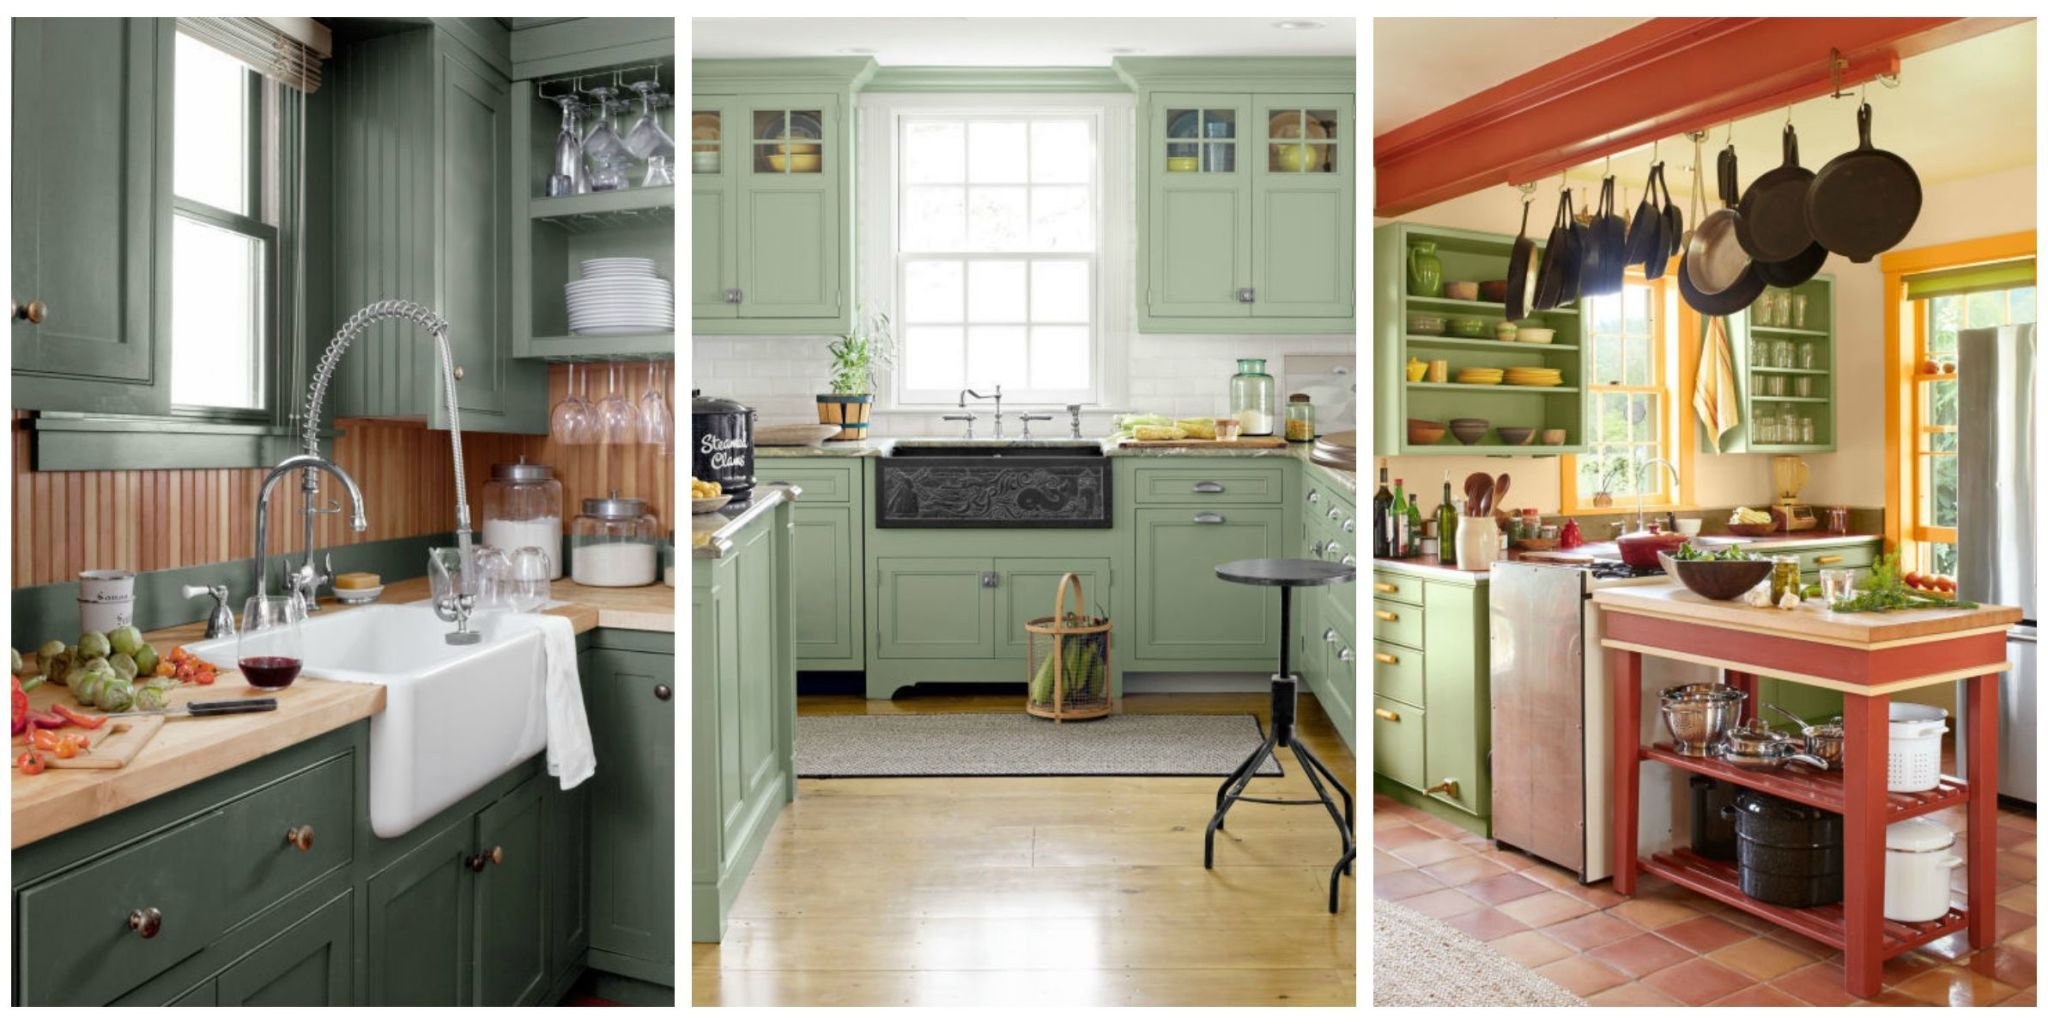 10 Bright and Beautiful Paint Colors to Try for a Green Kitchen & 10 Green Kitchen Ideas - Best Green Paint Colors for Kitchens